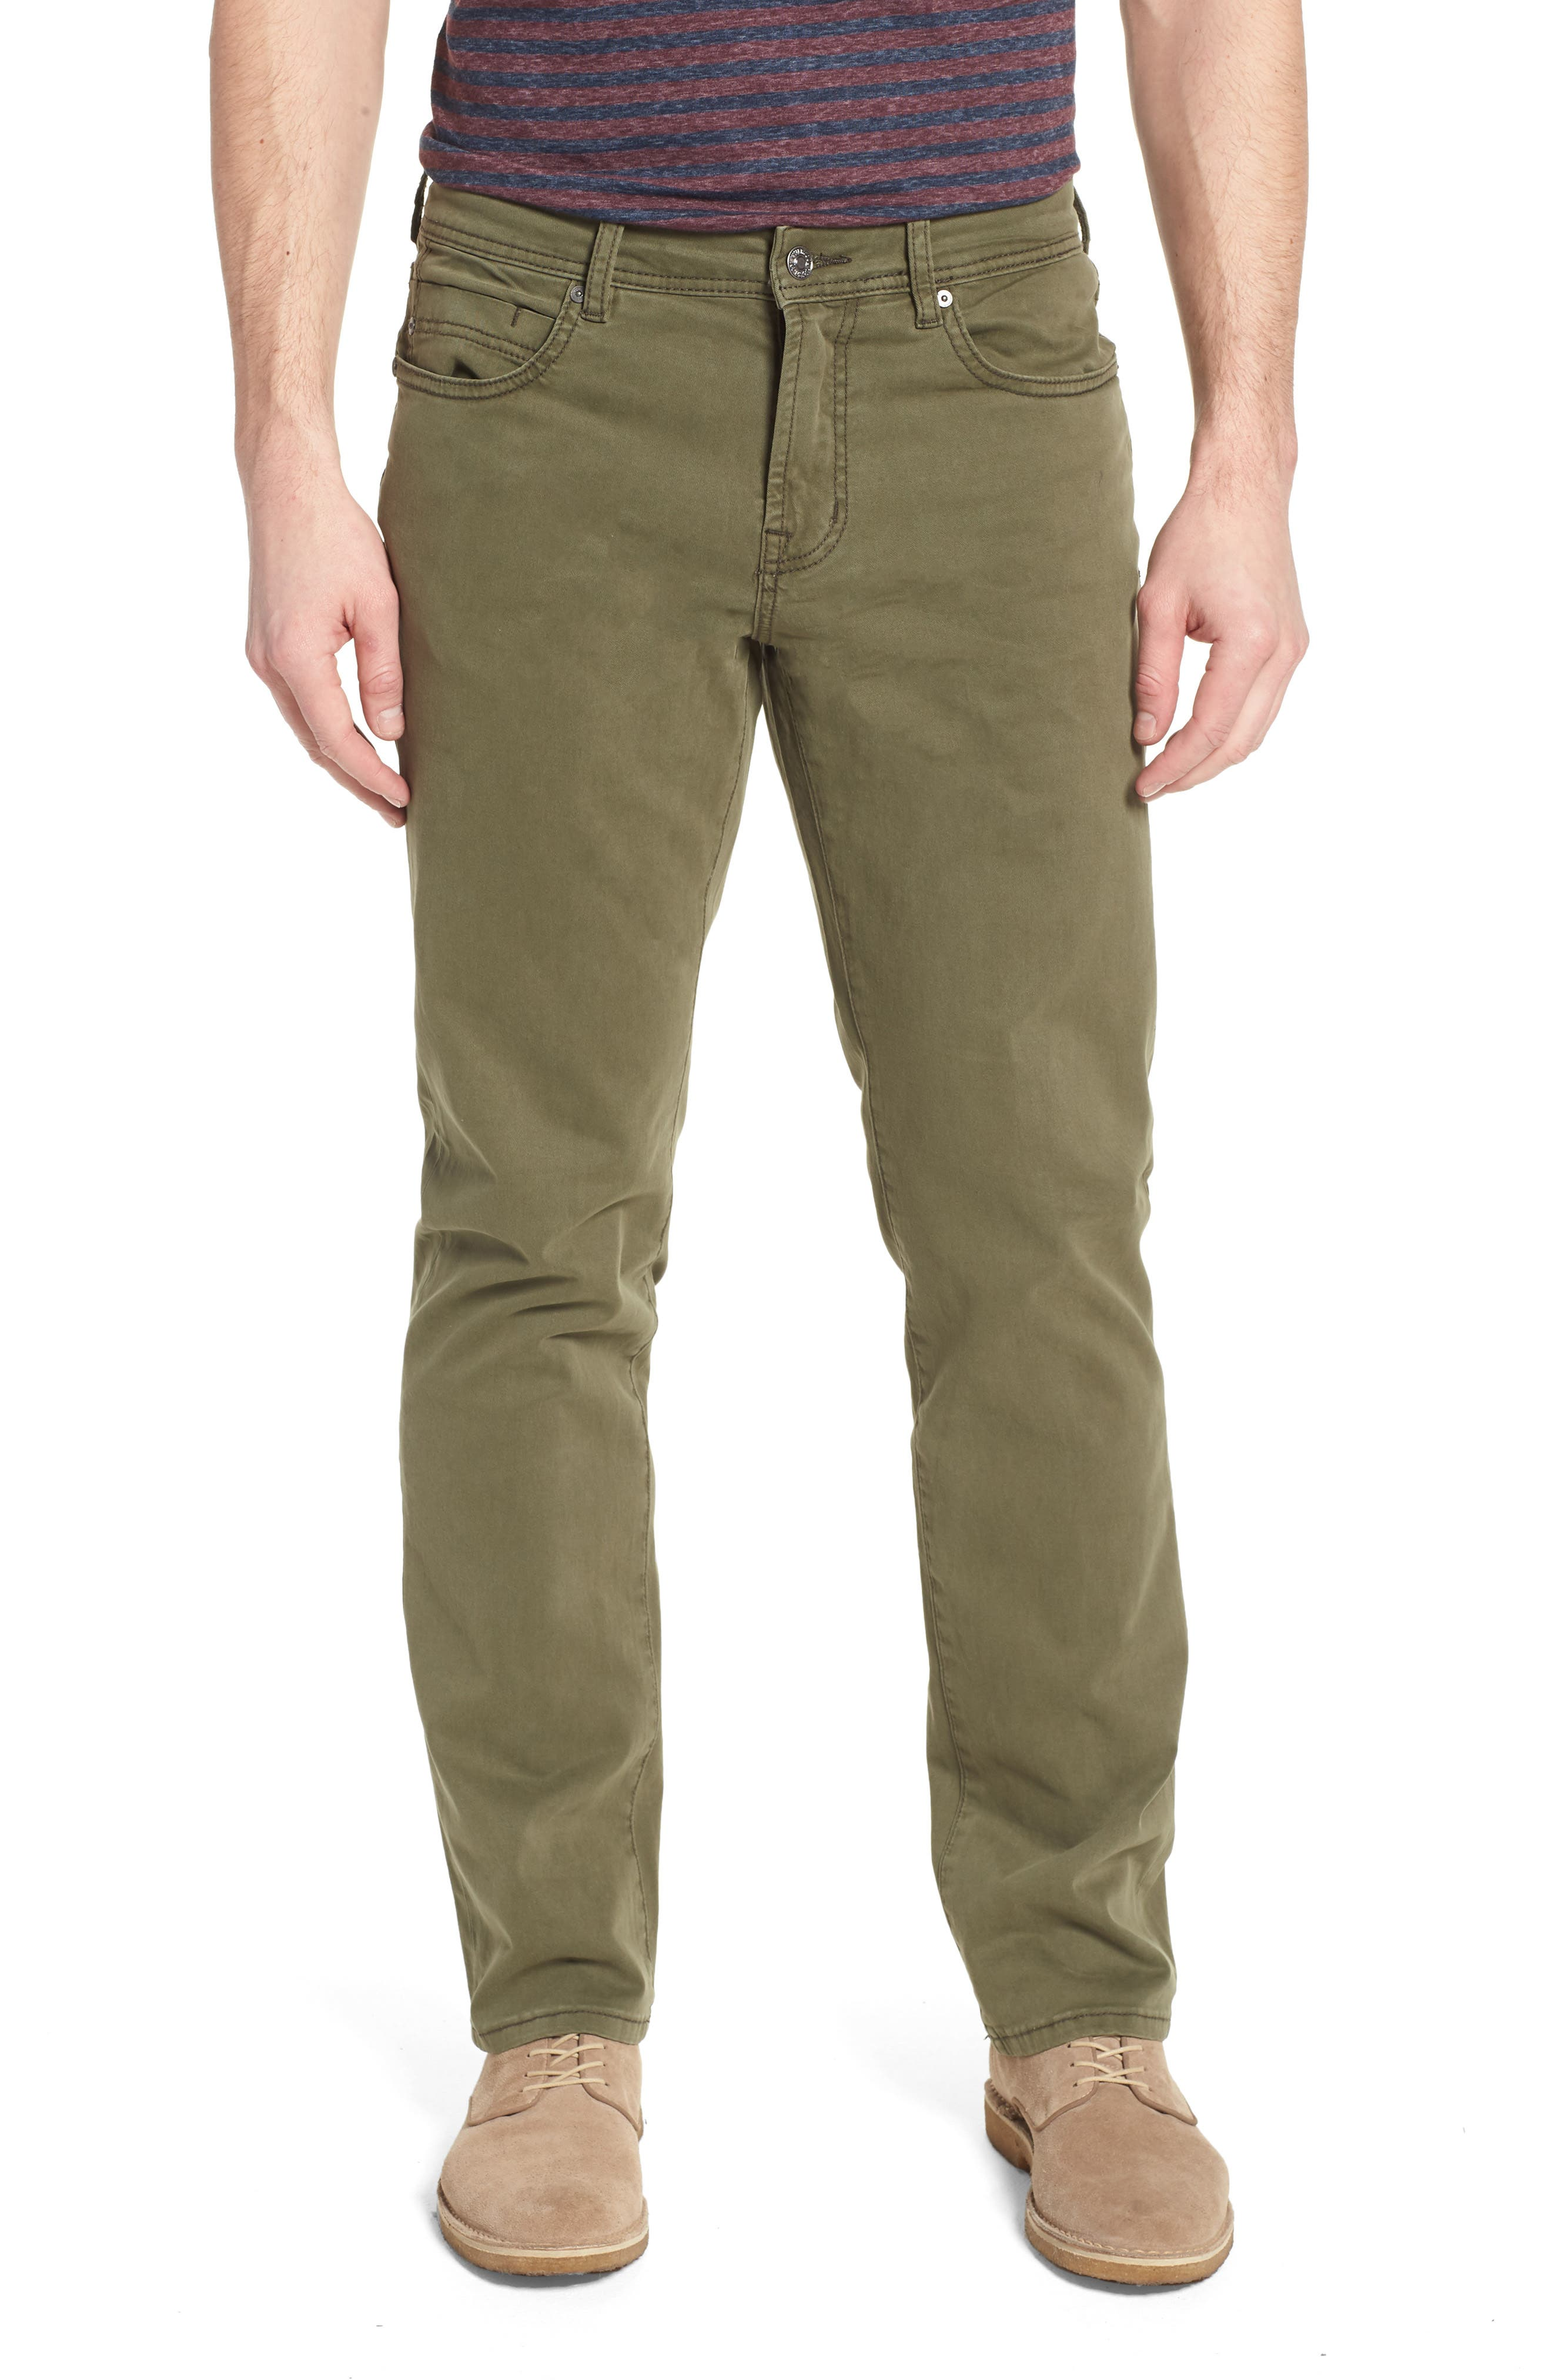 Jeans Co. Regent Relaxed Fit Jeans,                             Main thumbnail 1, color,                             Olive Night